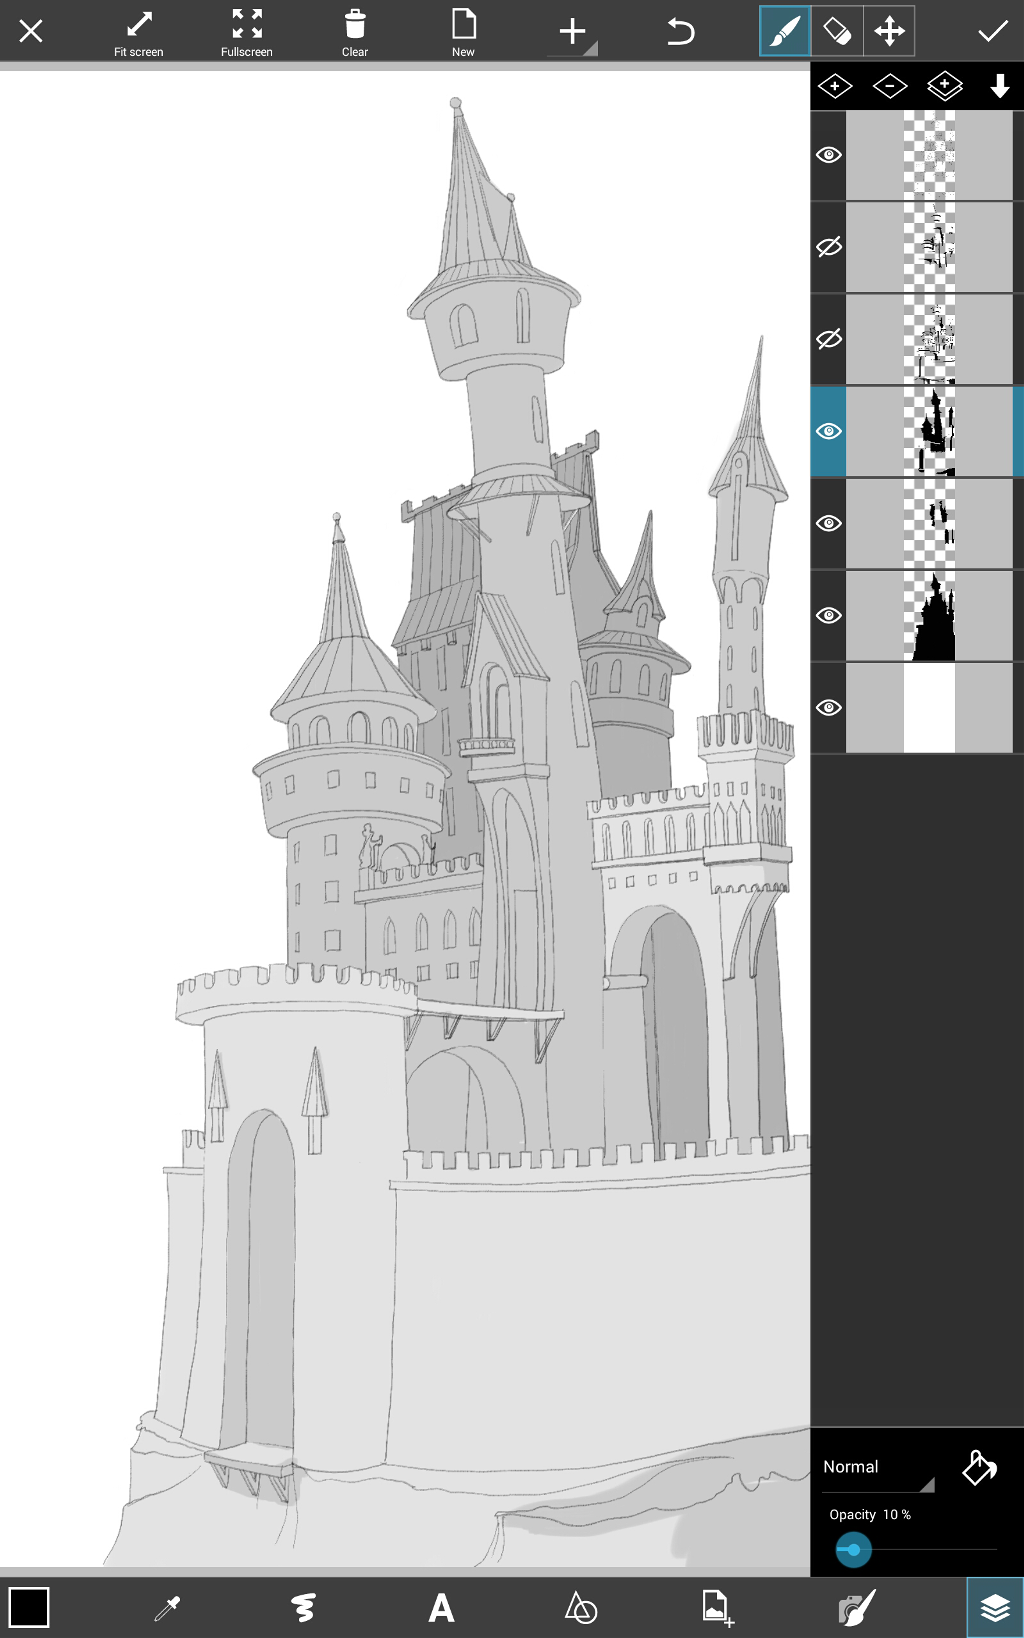 a castle drawing how to draw a castle using picsart drawing tools create a castle drawing